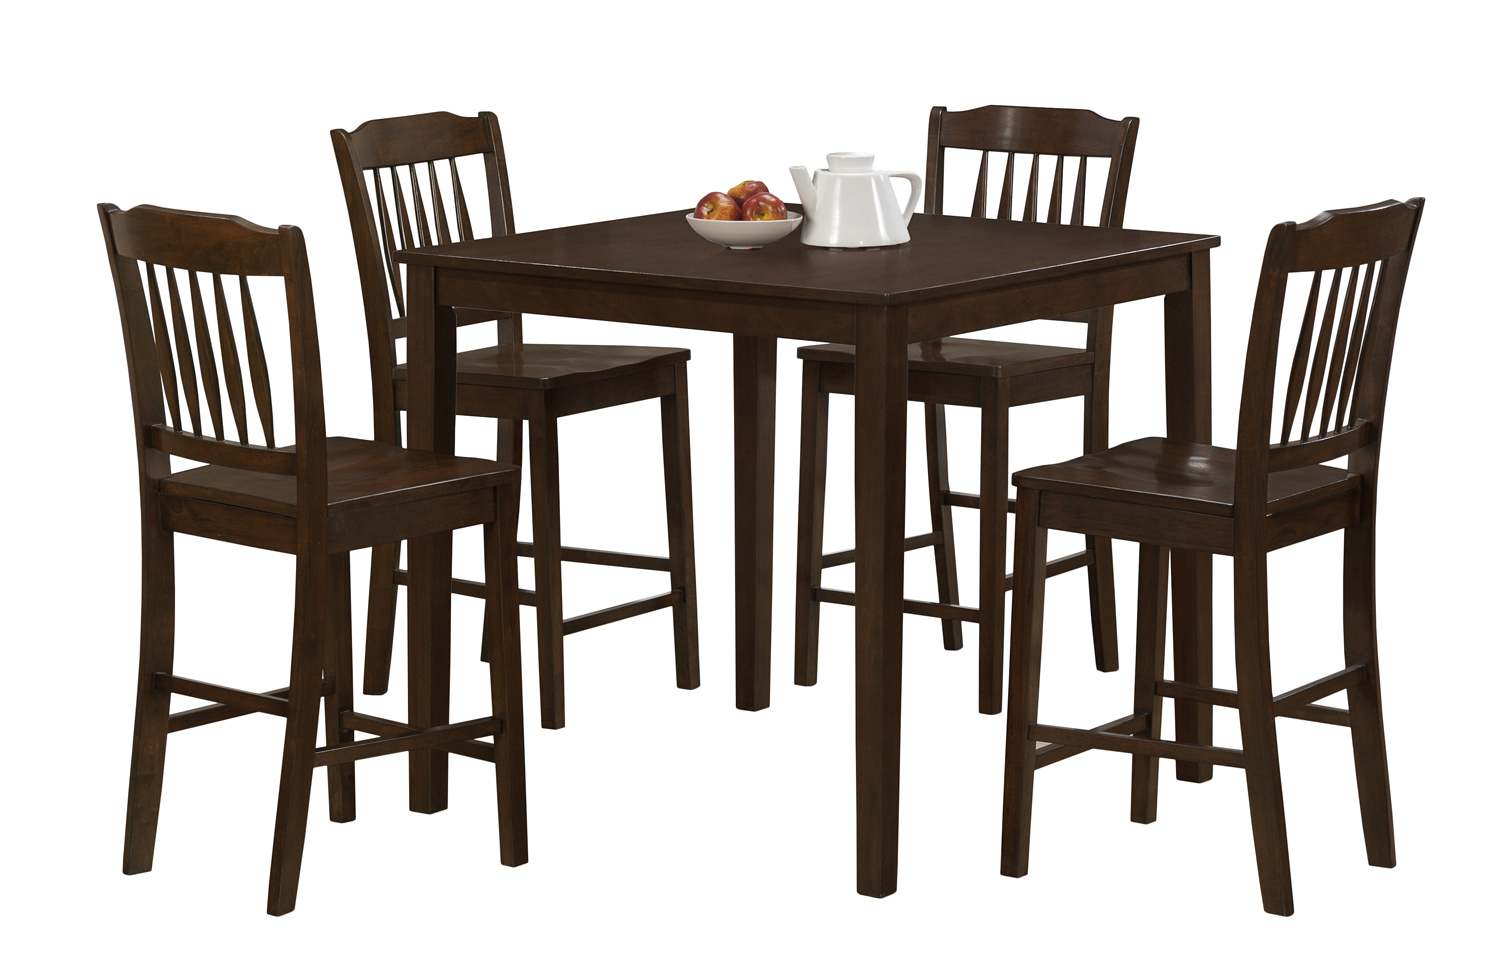 Dining Set - 5 Pieces Set / Cappuccino Veneer Counter Height